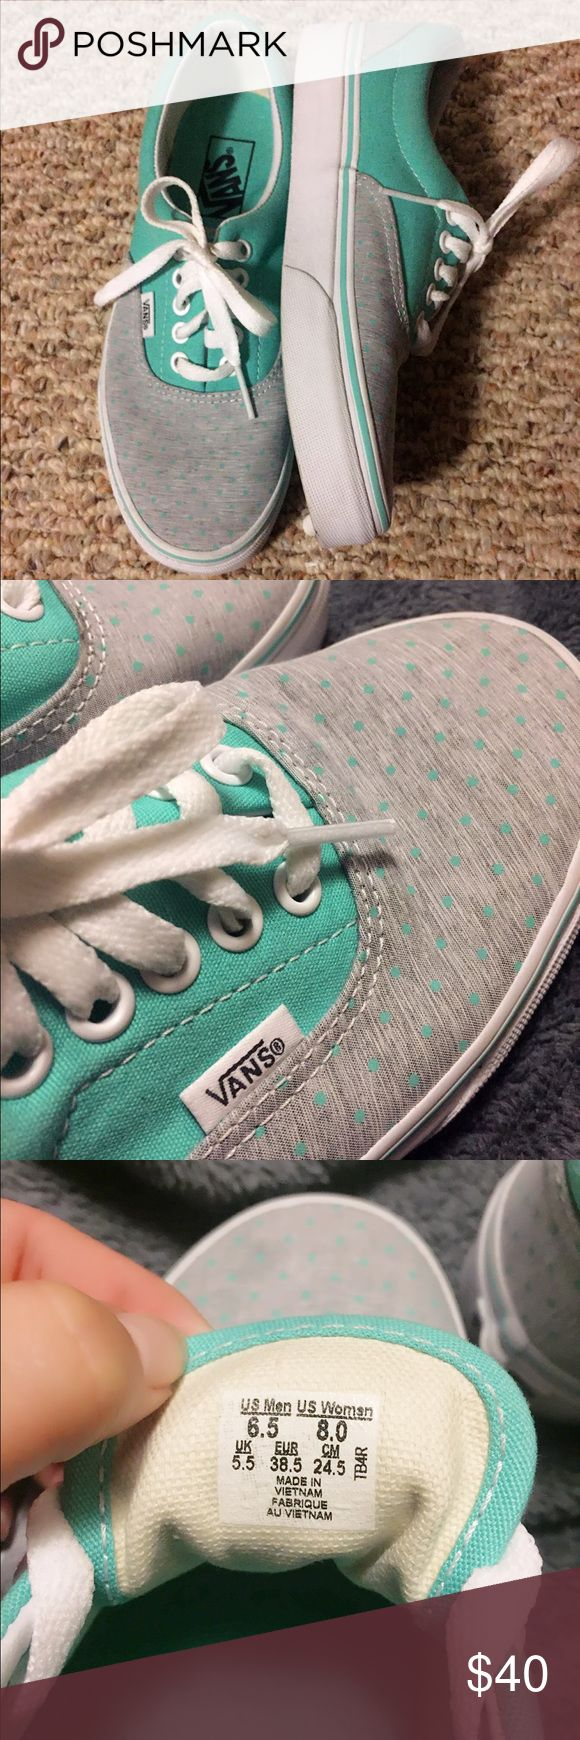 Teal Vans Women's Teal vans with polka dots in the grey. Worn one time and not outside. Basically brand new. Smoke free home. Vans Shoes Sneakers